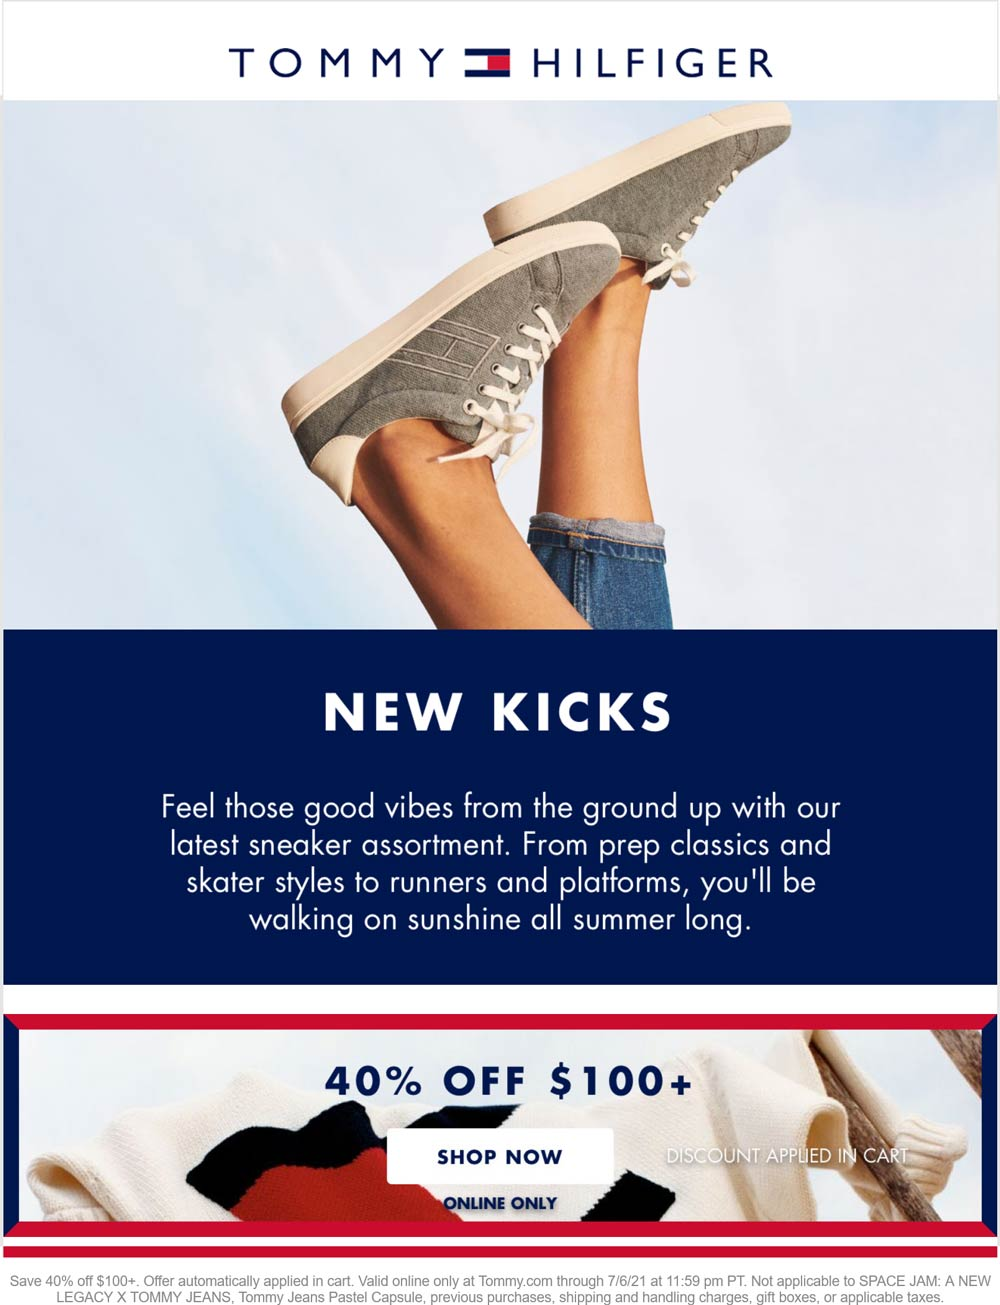 Tommy Hilfiger stores Coupon  40% off $100 online at Tommy Hilfiger #tommyhilfiger